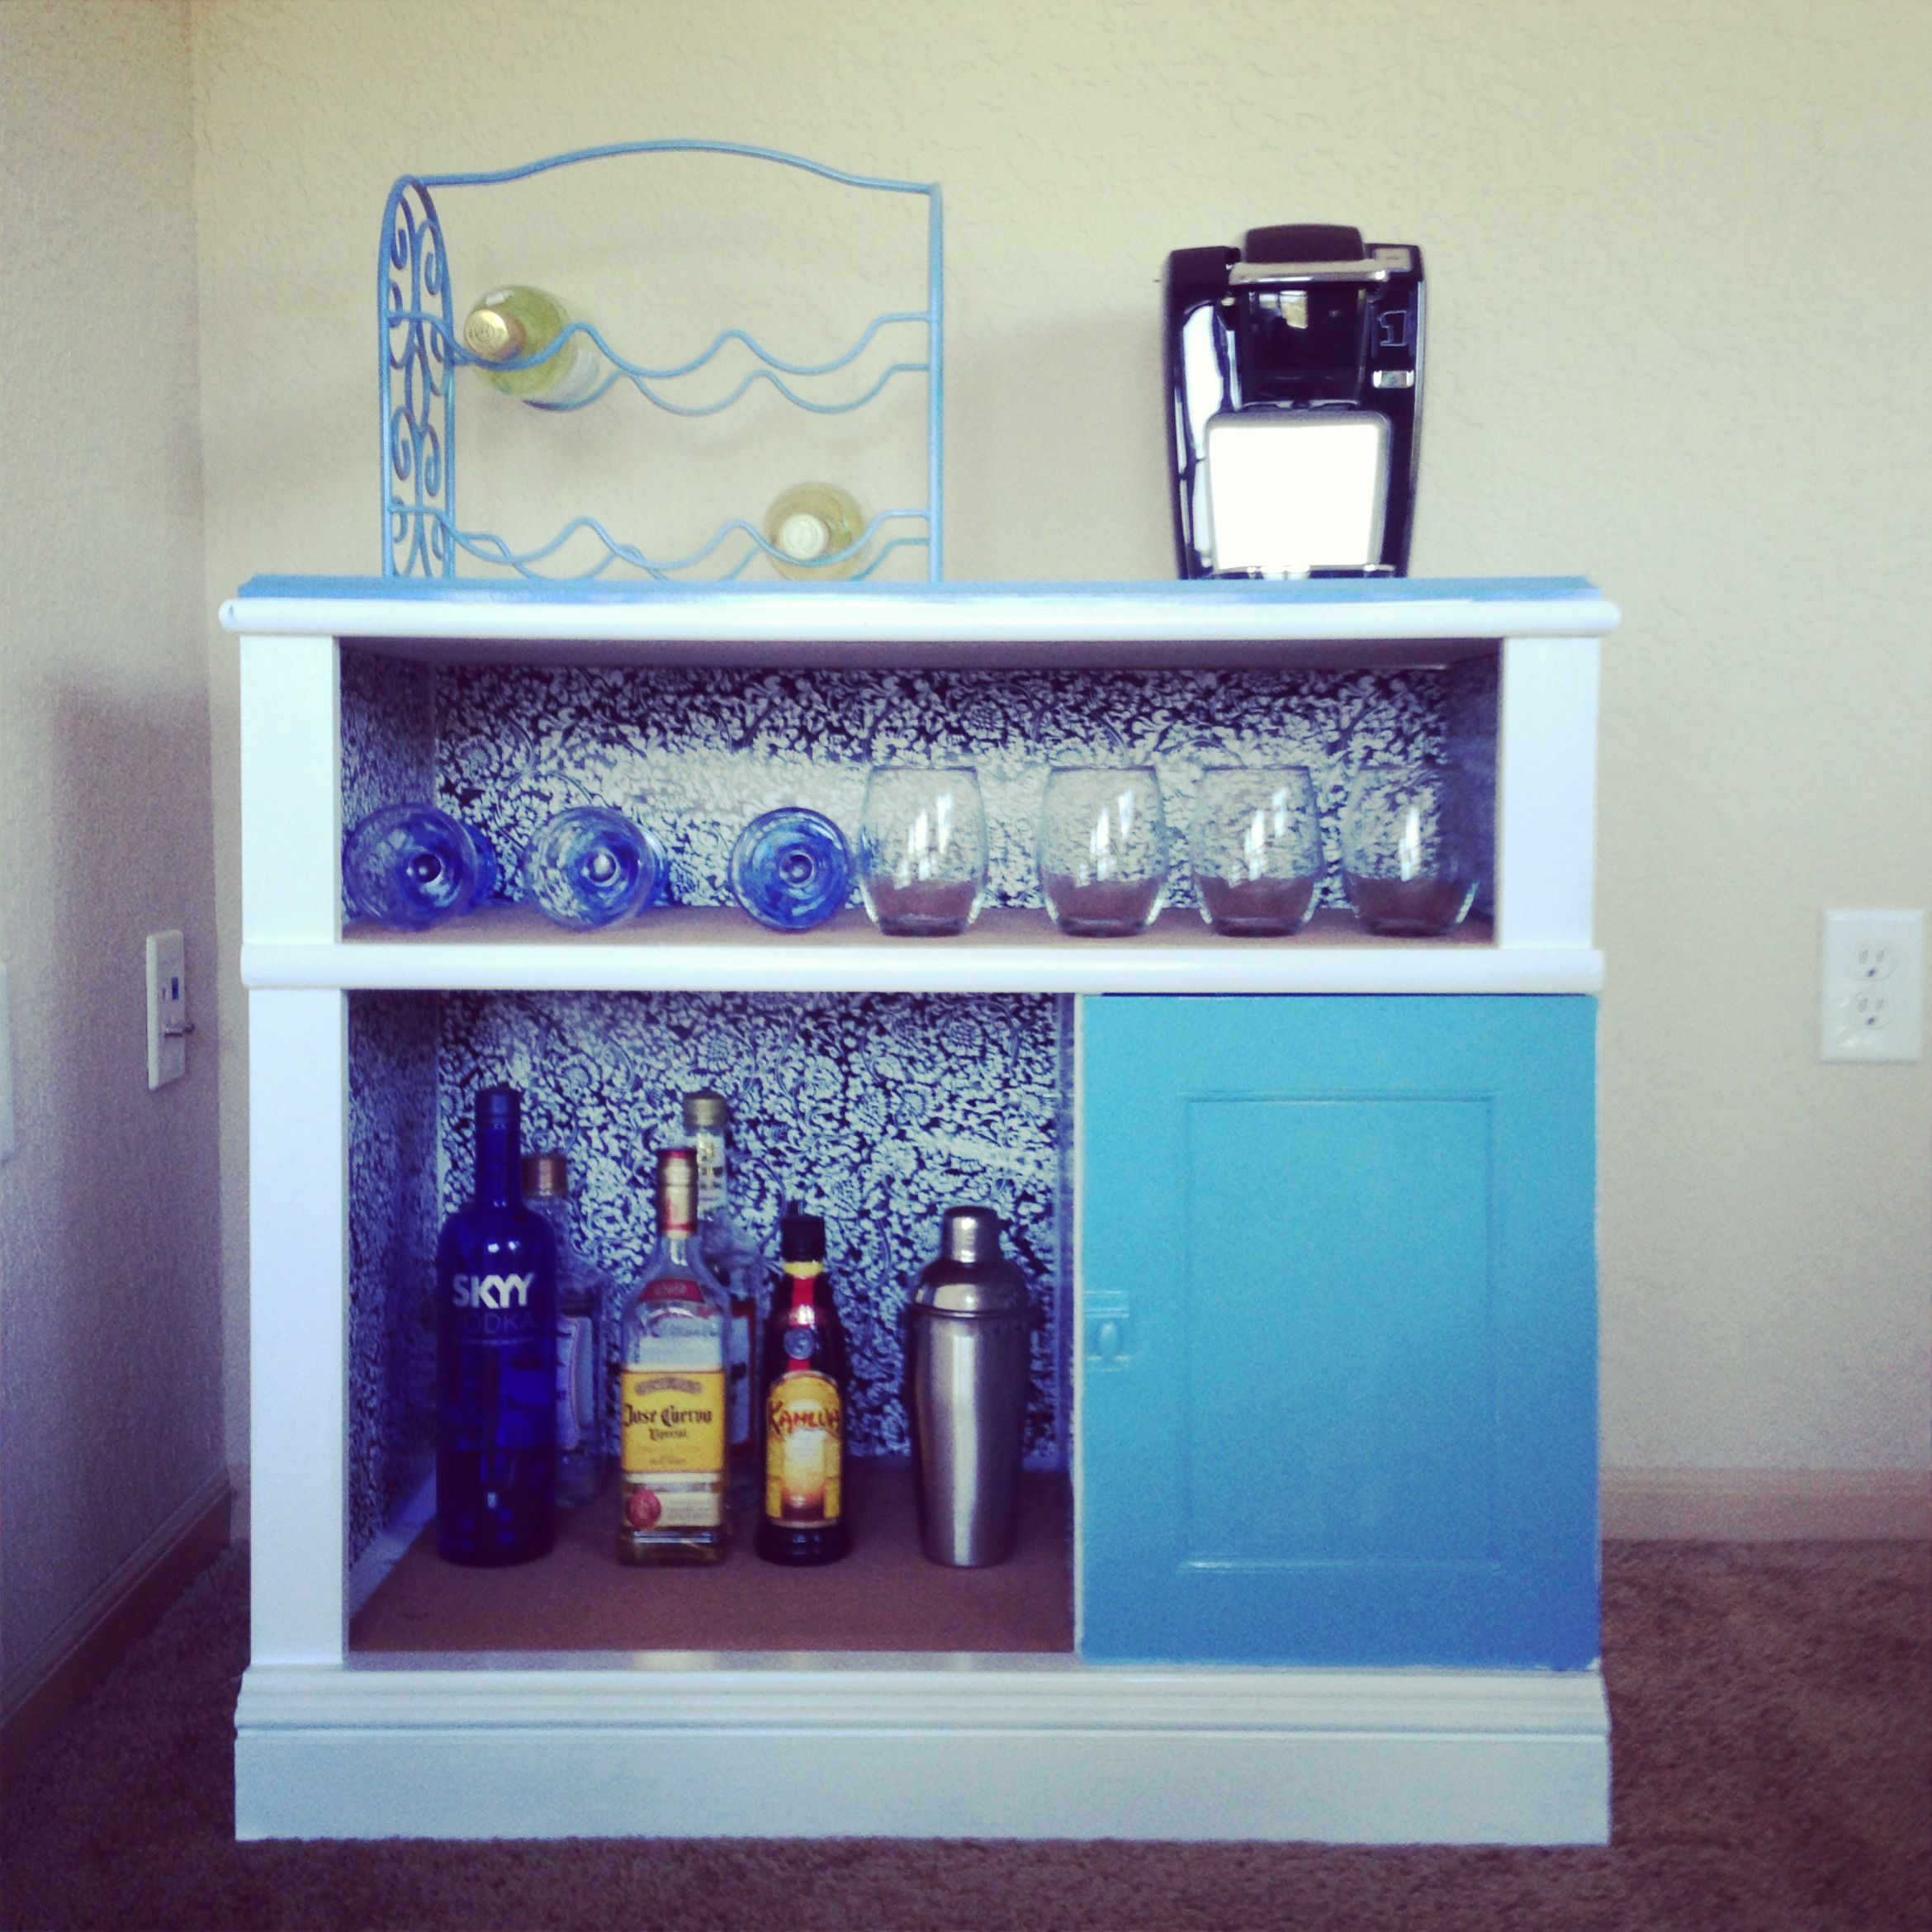 DIY mini bar for the apartment! | semi-realistic apartment ...